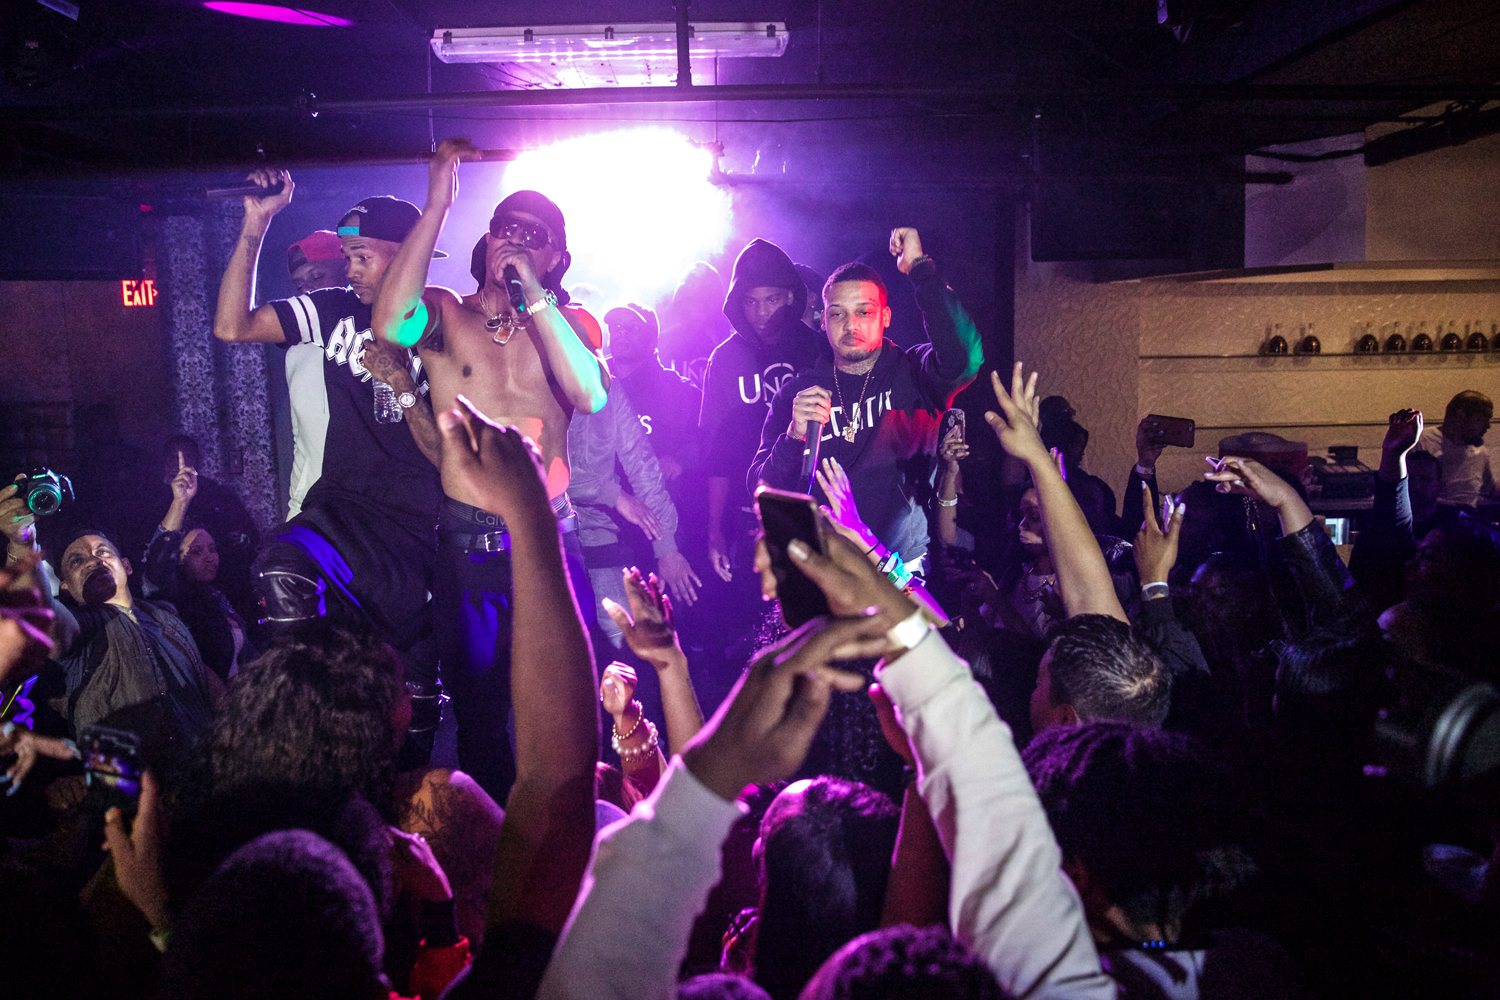 SXSW: THE HUSTLE GANG EXPERIENCE